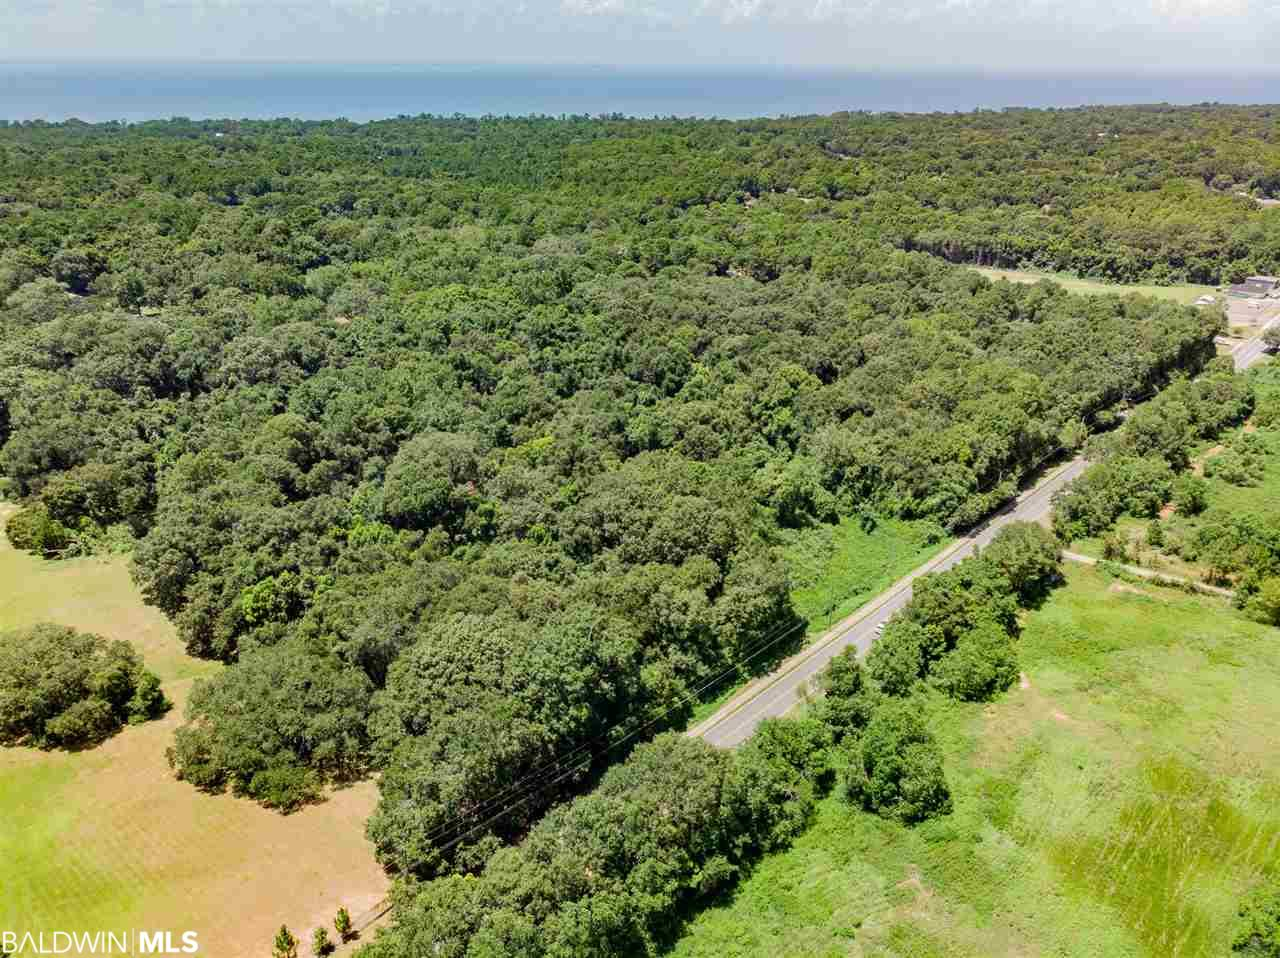 Rare opportunity to own 1-acre near beautiful downtown Fairhope!   This size lot is unheard of in this area at this price!  The parcel is just over a mile to Downtown and only 5 minutes from Mobile Bay.  Only 4 lots available!  This listing is for Lot 4. All information provided is deemed reliable but not guaranteed. Buyer or buyer's agent to verify all information.